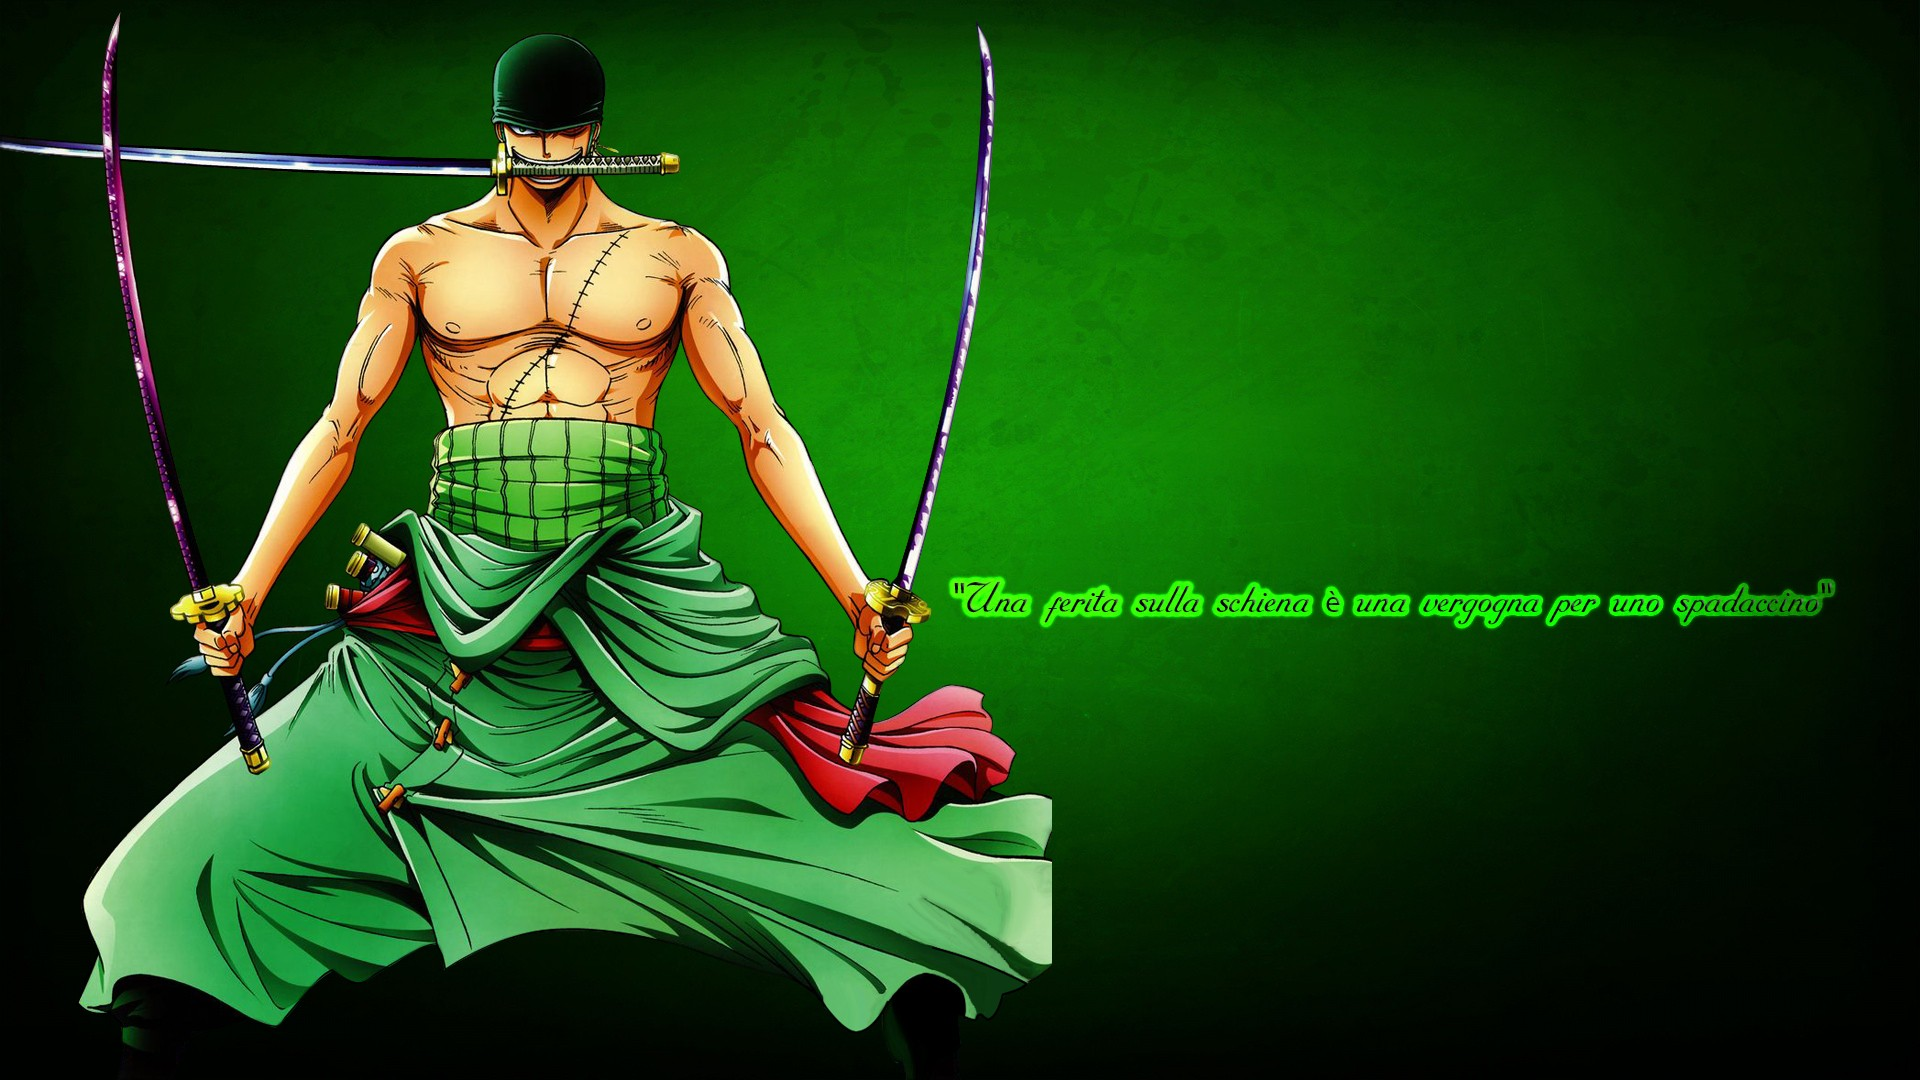 Roronoa Zoro Santōryu Hd Wallpaper Background Image 1920x1080